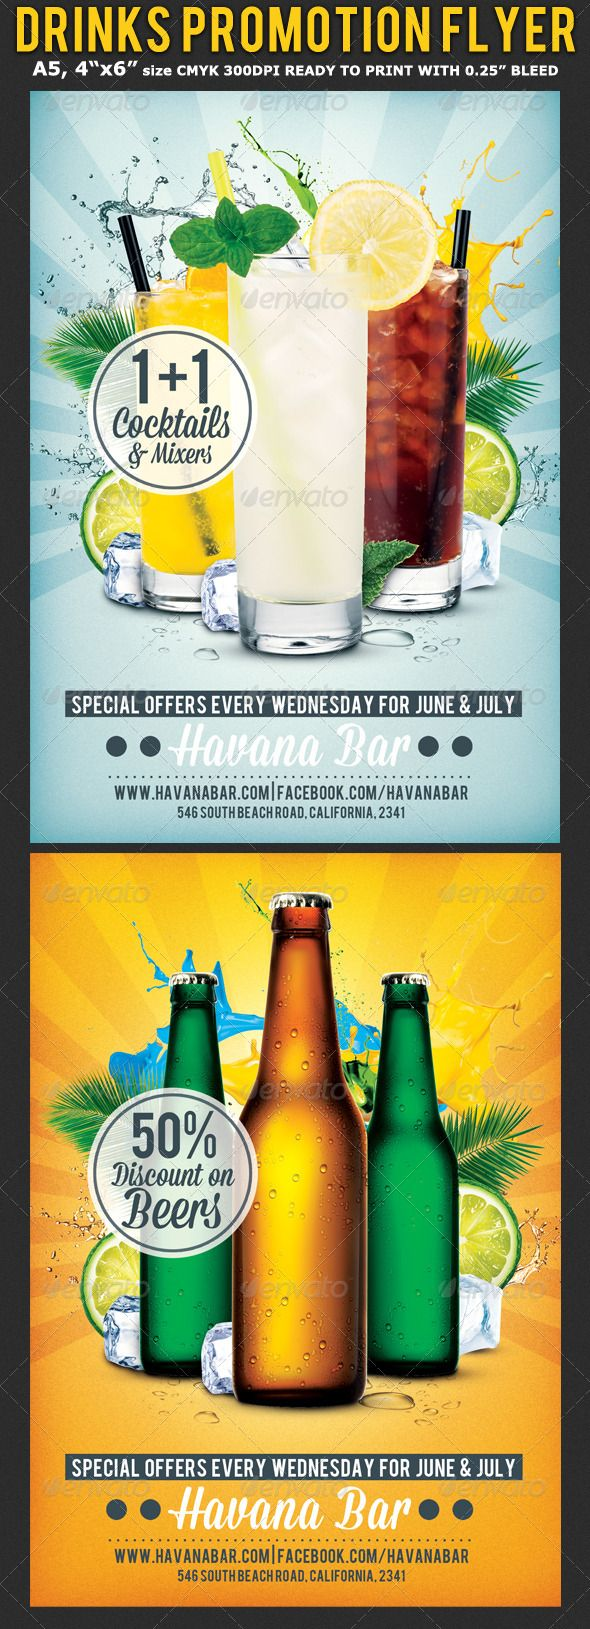 """Drinks Promotion Advertising Flyer Template is very modern psd flyer that will give the perfect promotion for your Happy Hour or drinks offers! All elements are in separate layers and all text is editable!  2 PSD files – A5 (15×21cm), 4""""x6"""" with 0.3mm bleed  Clearly labeled folders and layers.  CMYK – 300dpi – Ready to print with guides  2 Background Variations"""